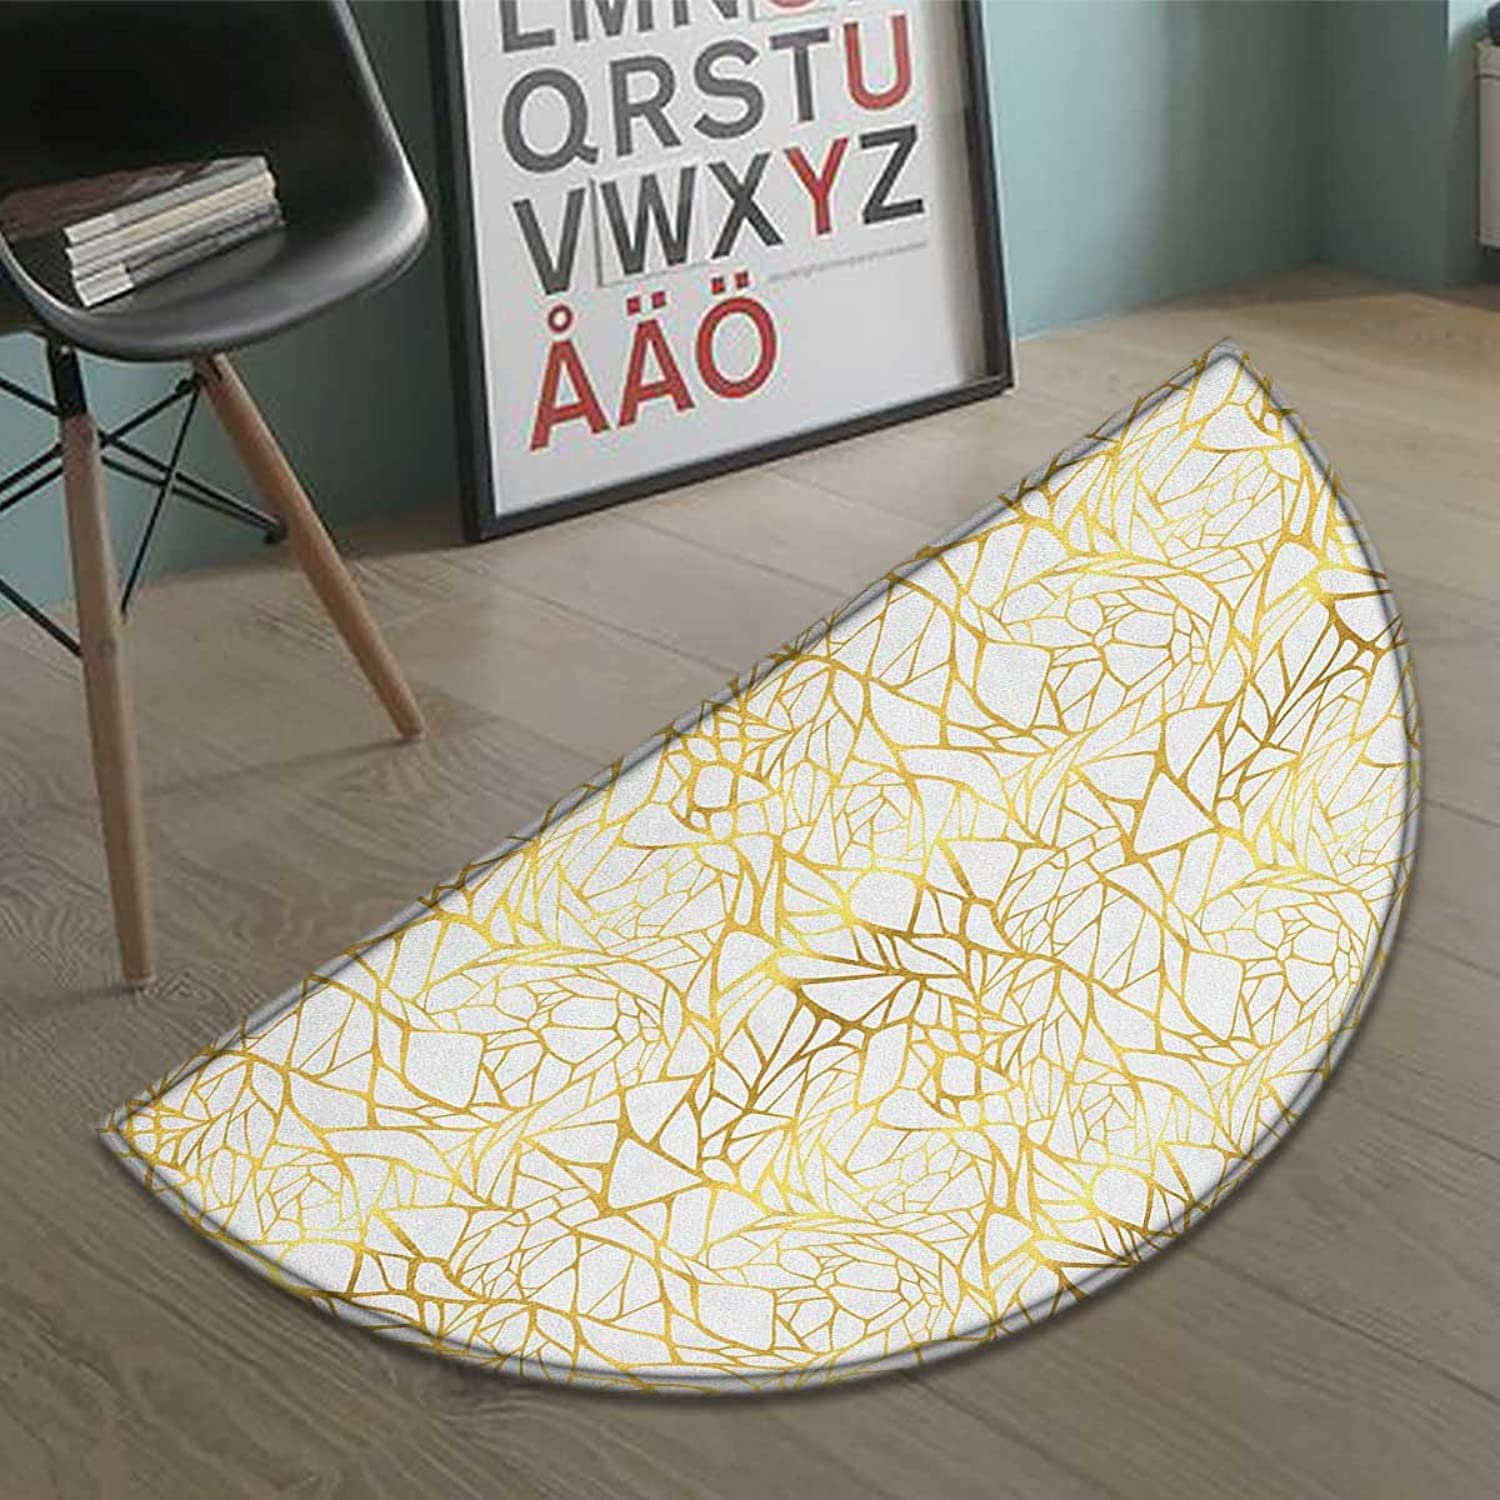 Contemporary Half Round Doormat Outside Abstract Ornament Exotic Animal Pattern Style Feminine Glamor Print Bathroom Mat for tub Non Slip gold Yellow and White Size:35.5 x23.7